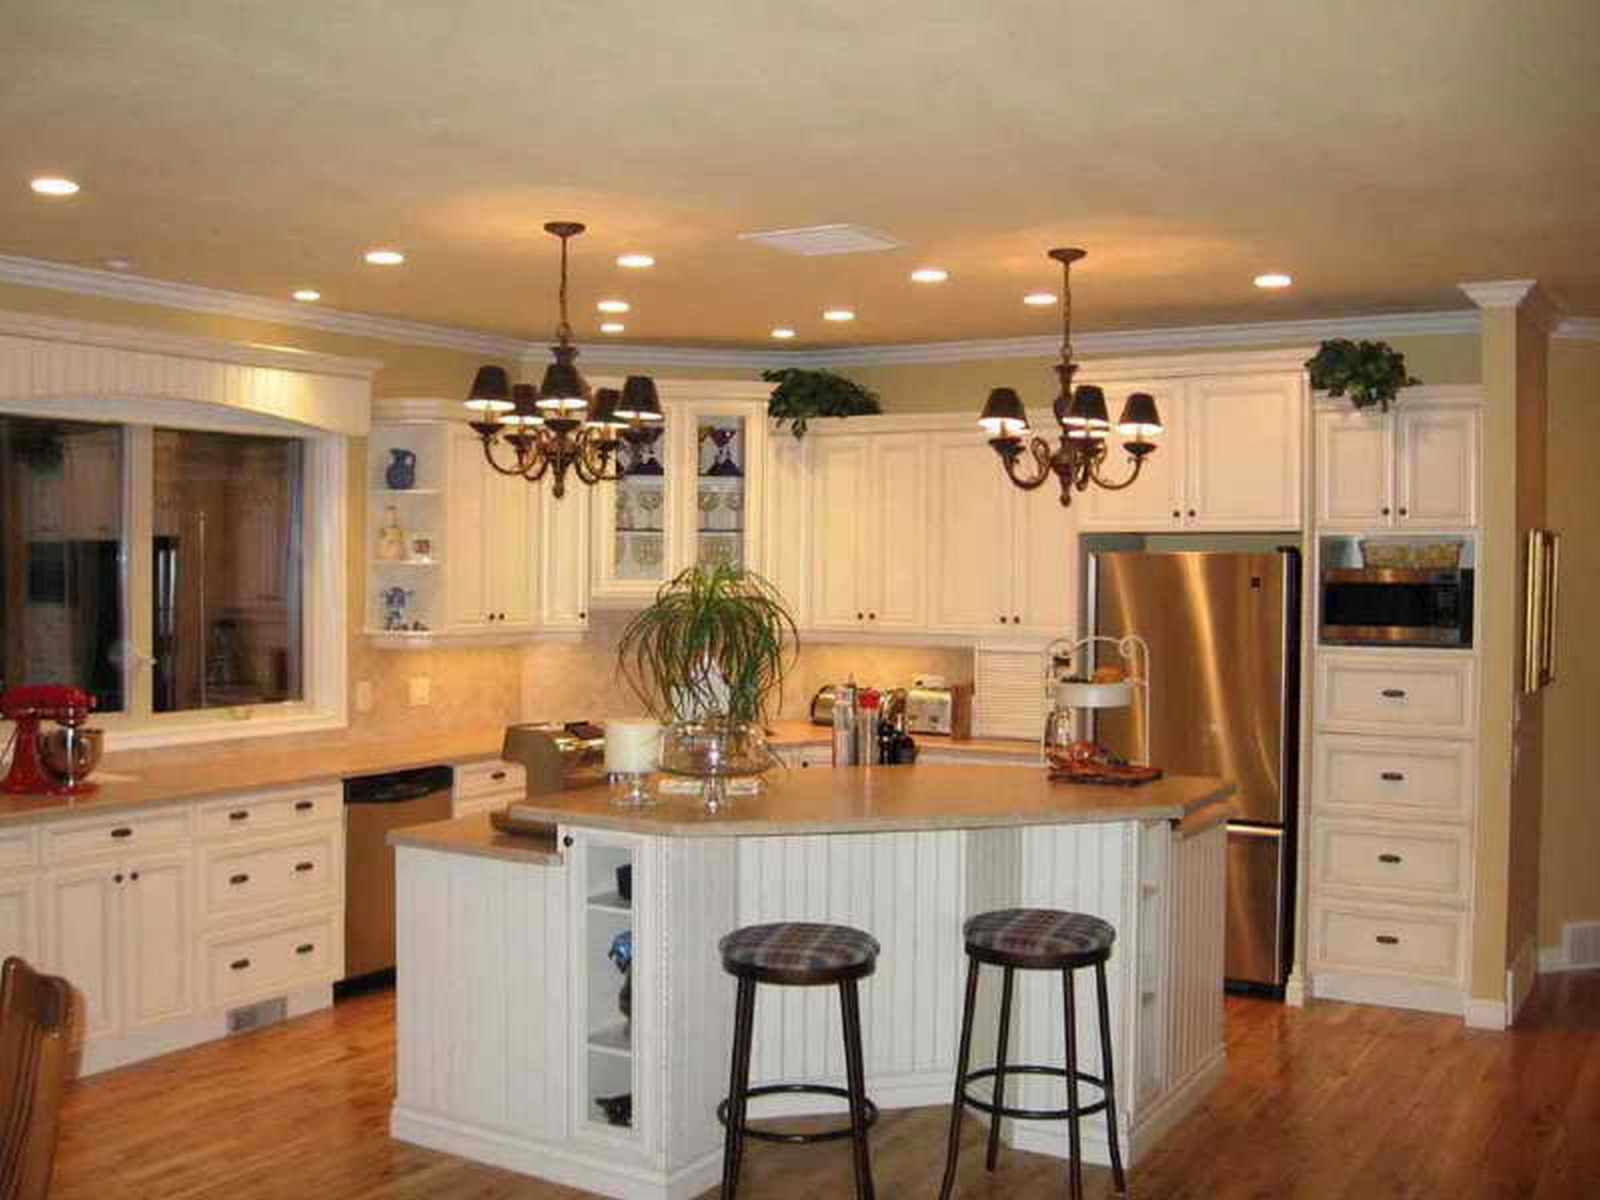 Kitchen remodeling contractor cabinets counters flooring for Renovating kitchen units